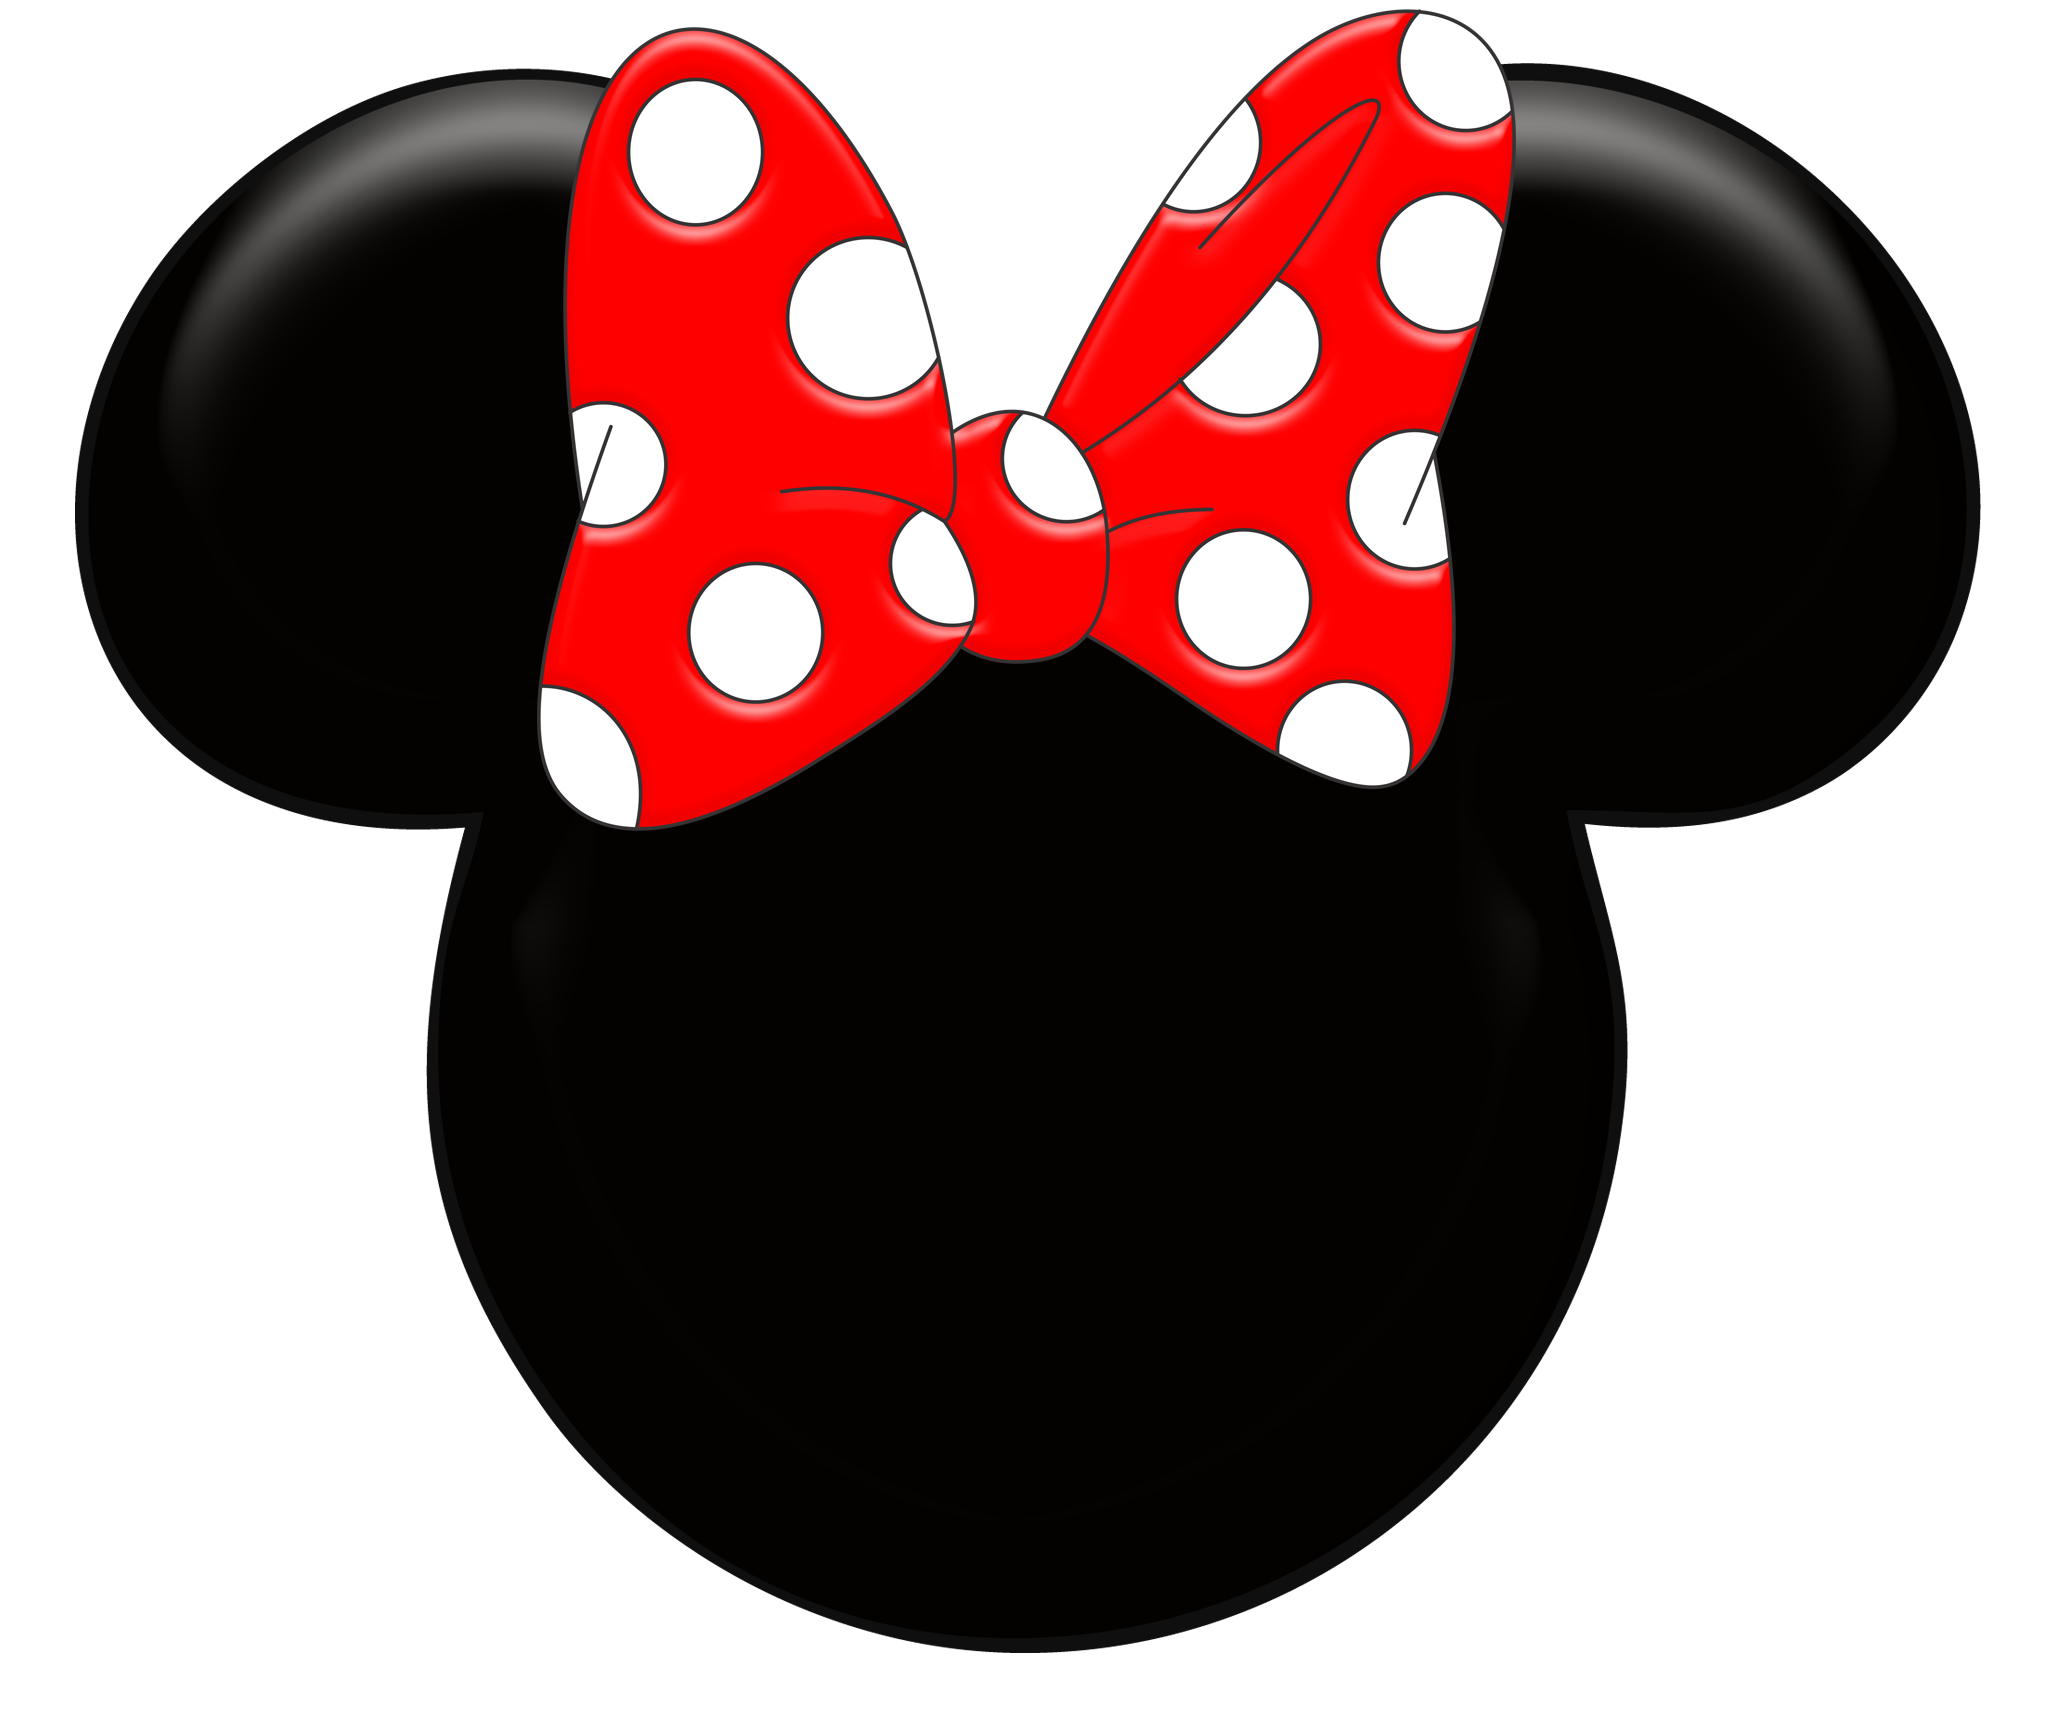 Red Minnie Mouse Wallpaper Kit Digital Minnie Mouse Png